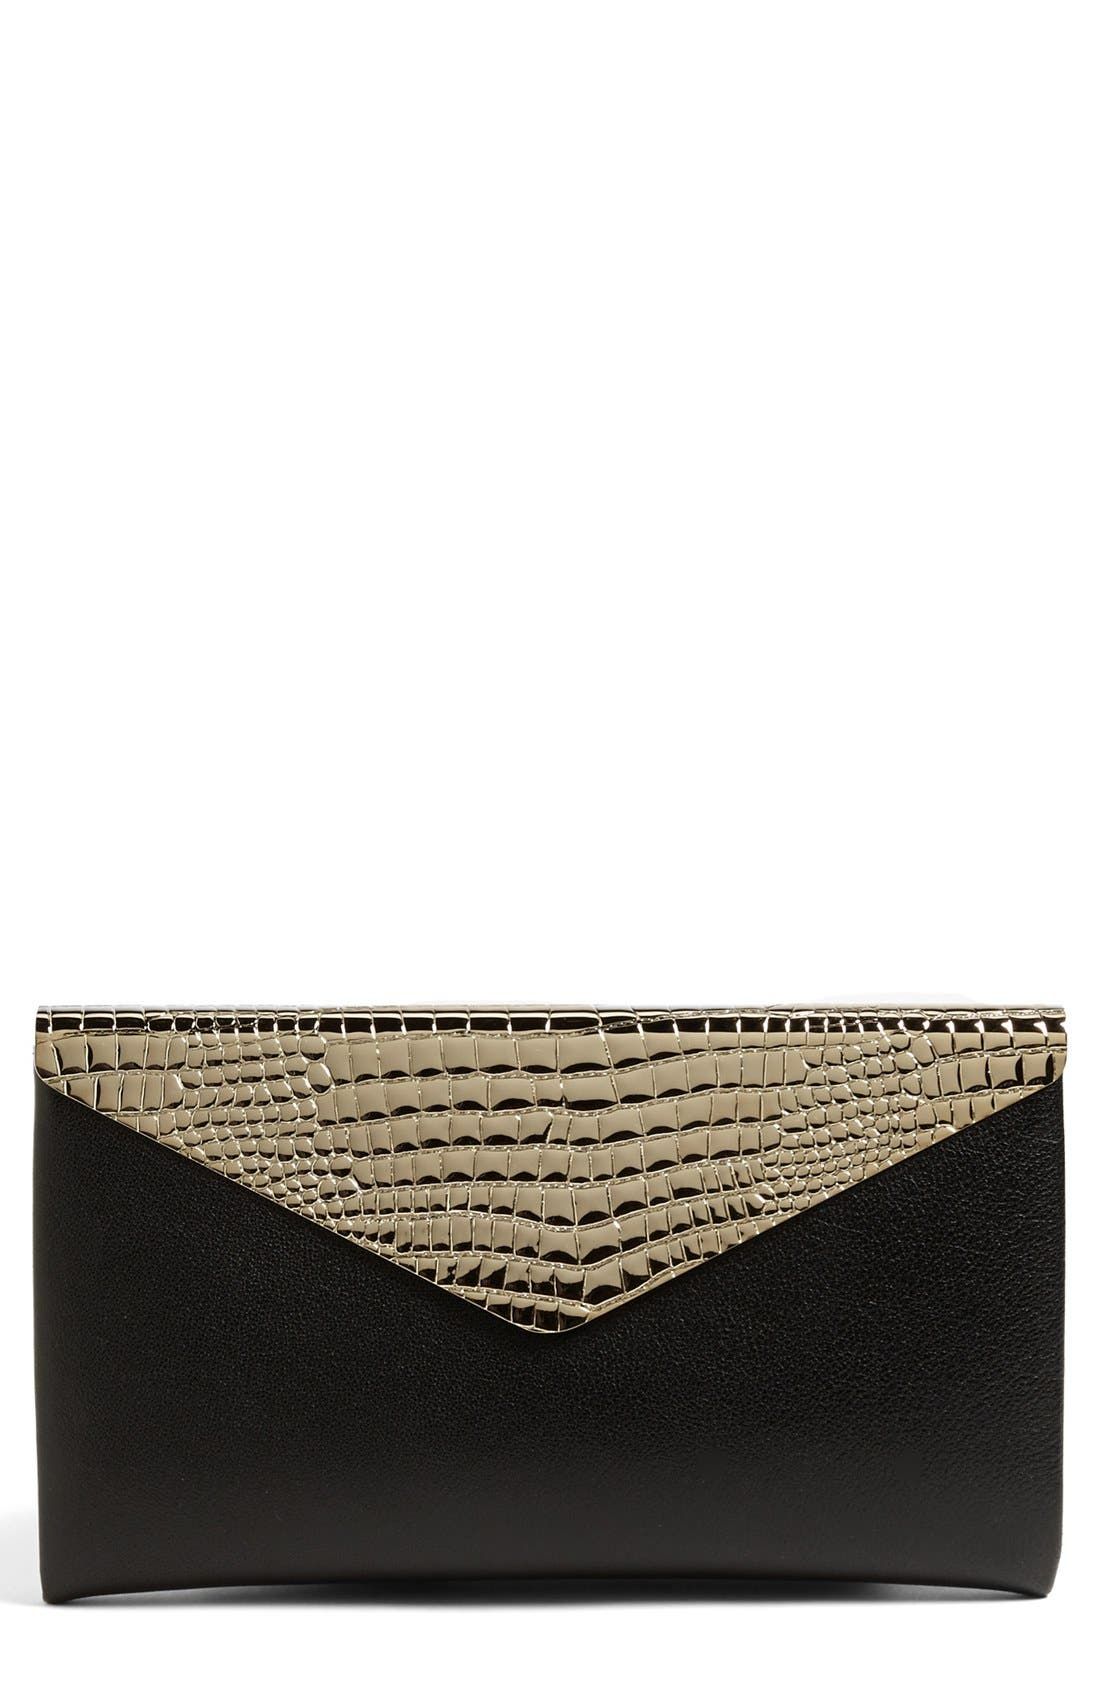 Alternate Image 1 Selected - Jimmy Choo 'Charlize' Envelope Clutch